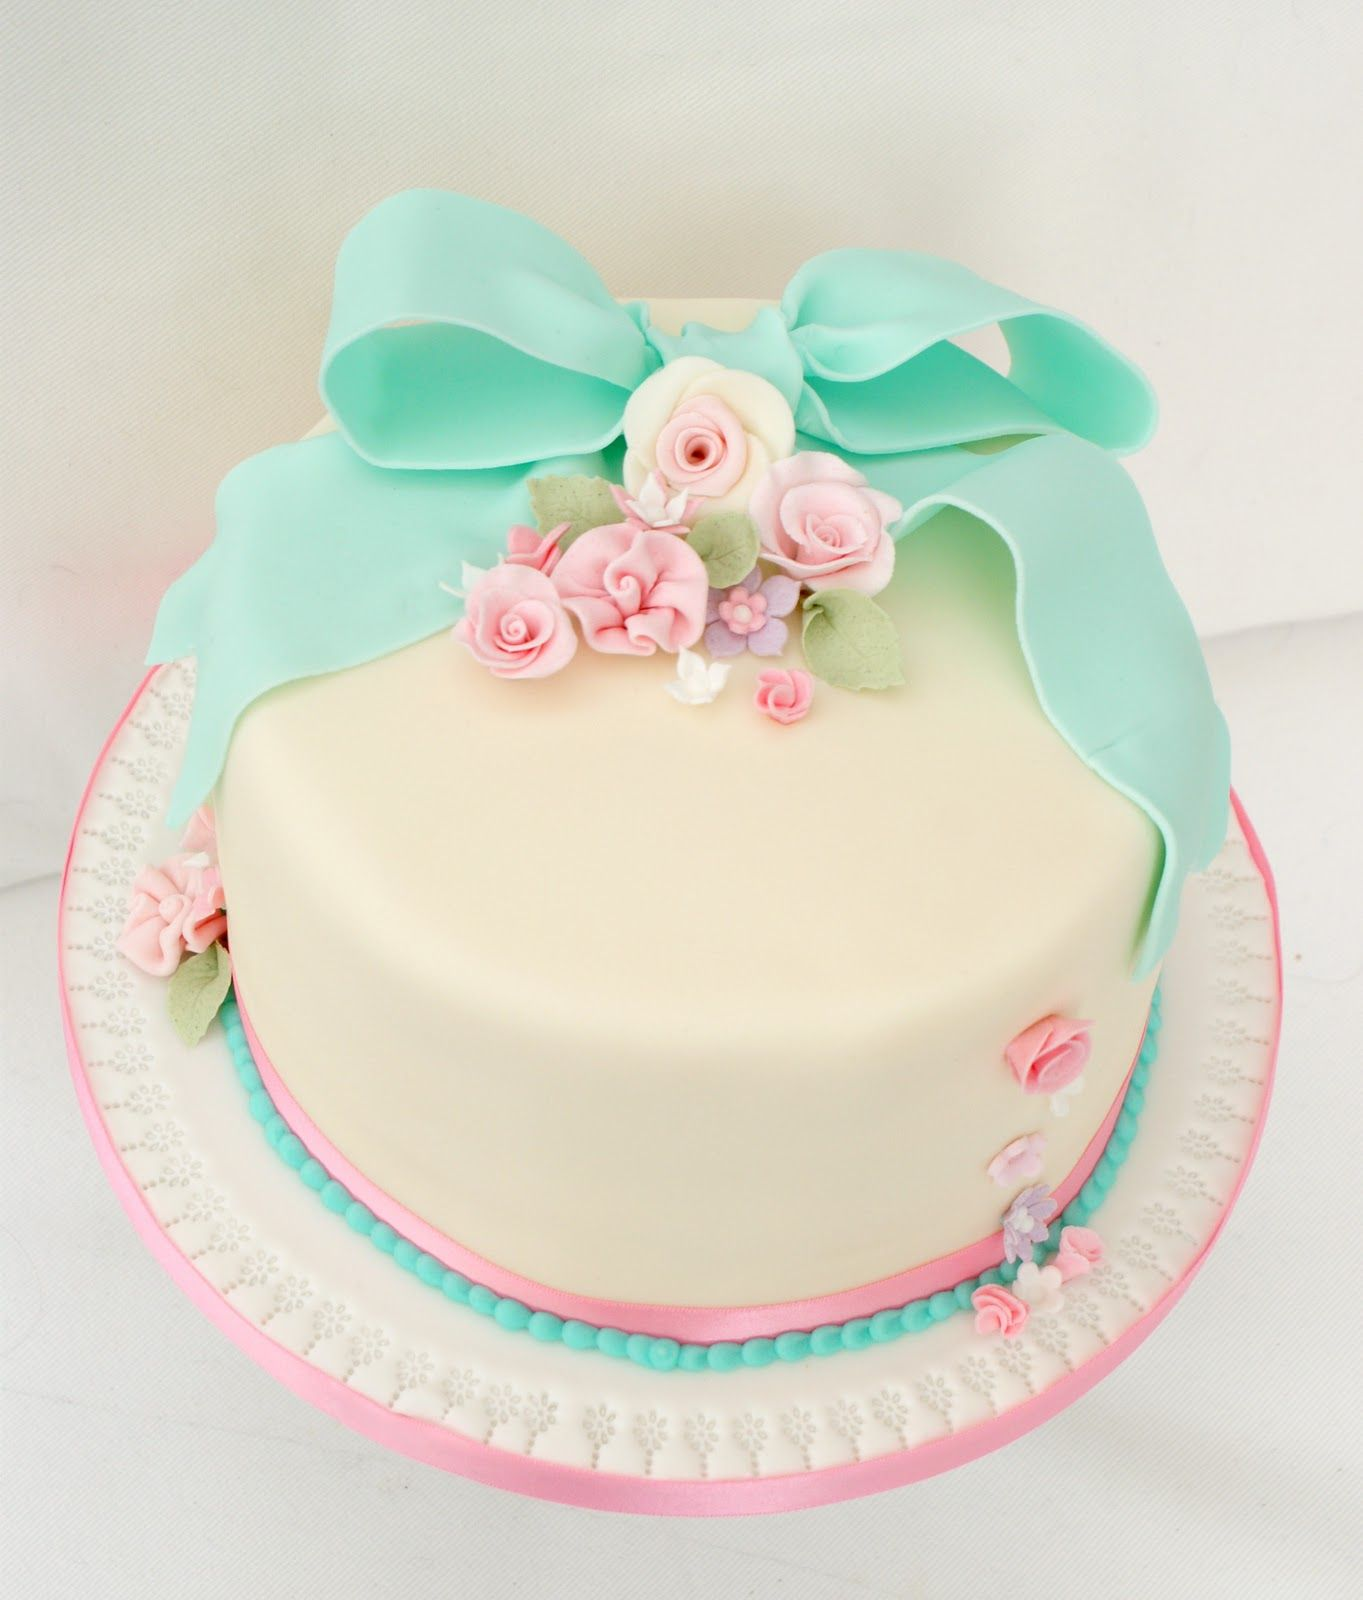 Cake Decorating Classes Dc : Shabby Chic Decorating teaching a shabby chic cake ...